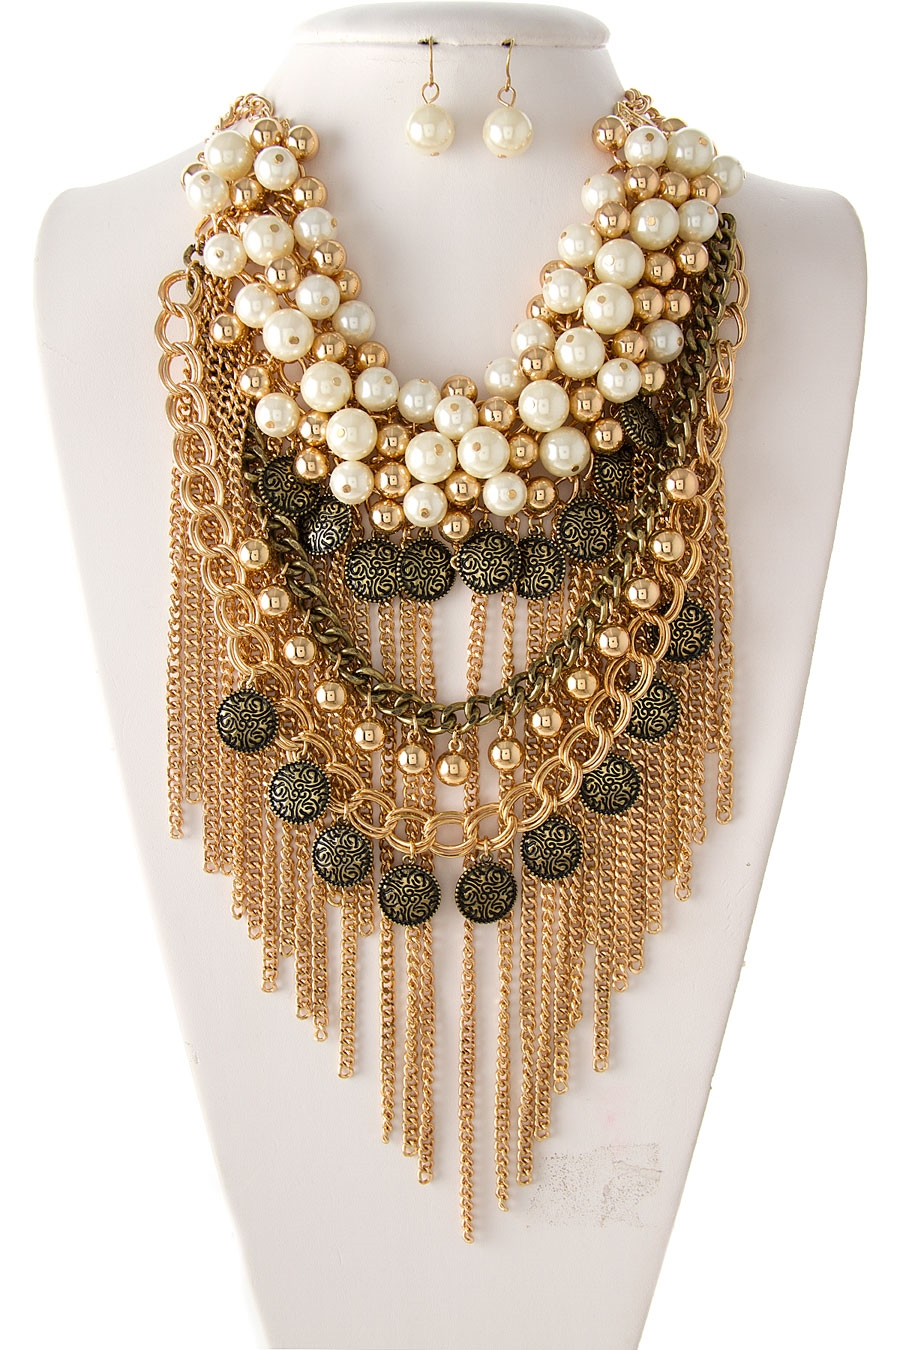 PEARL CLUSTER NECKLACE SET - orangeshine.com